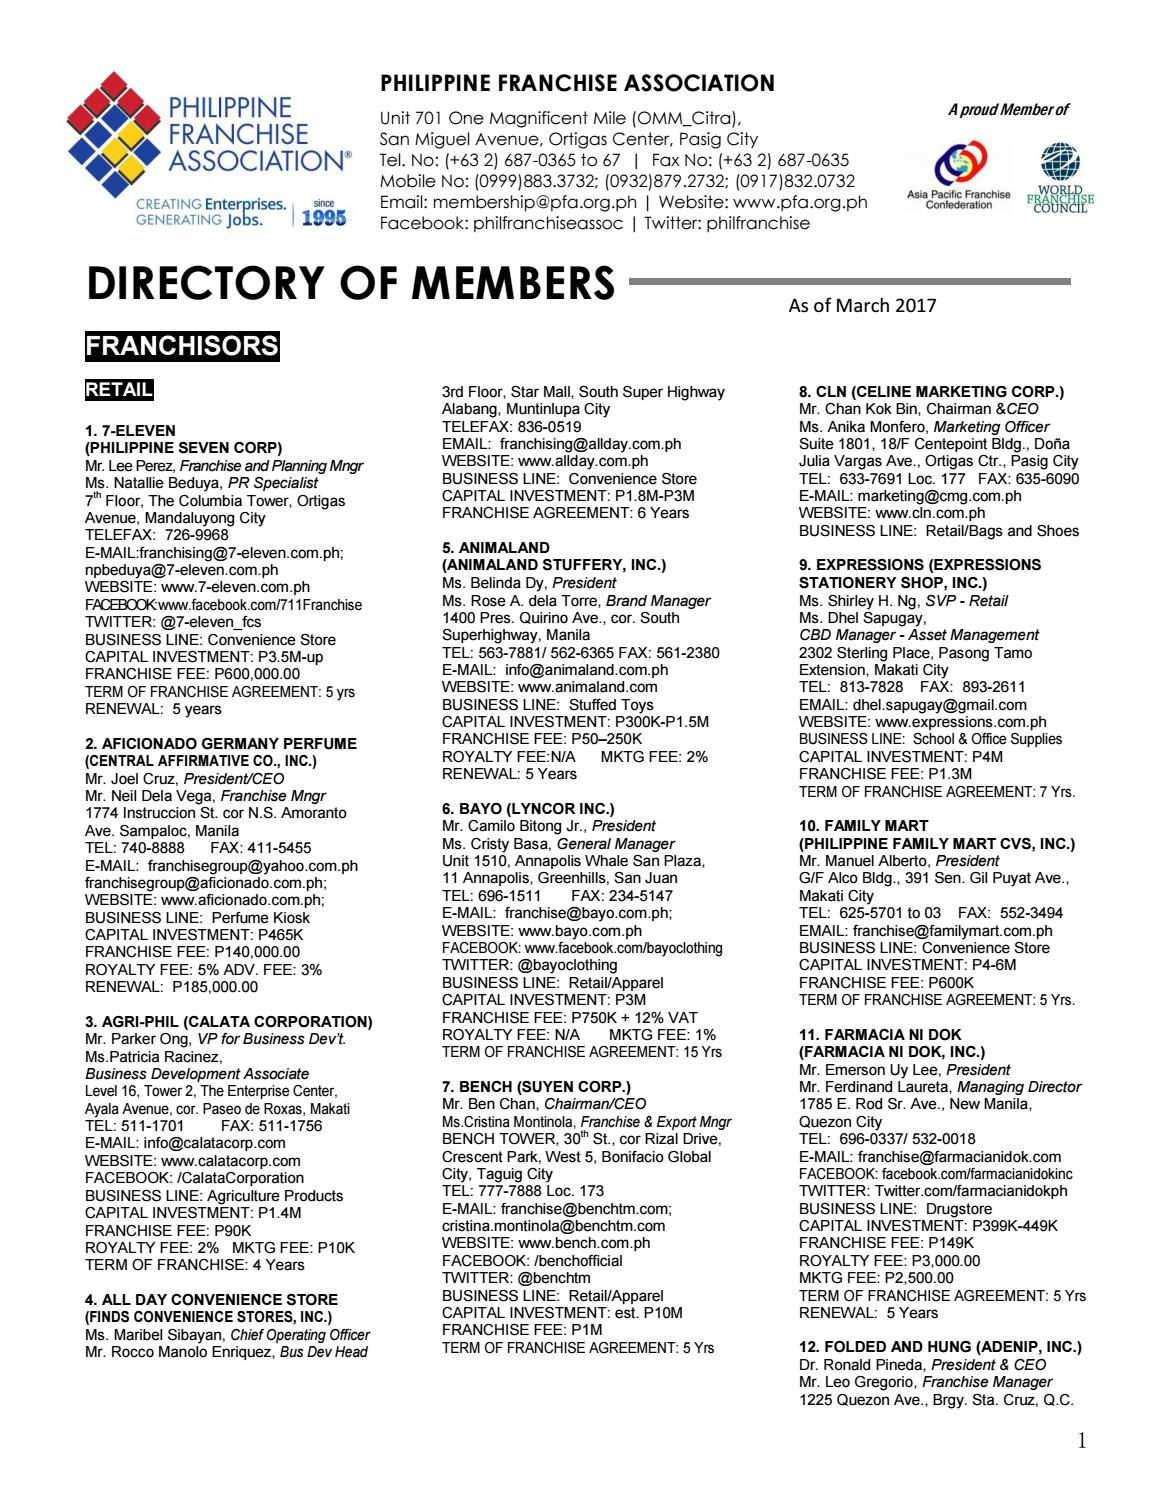 Directory Of Franchisors In The Philippines March 2017 By Dti